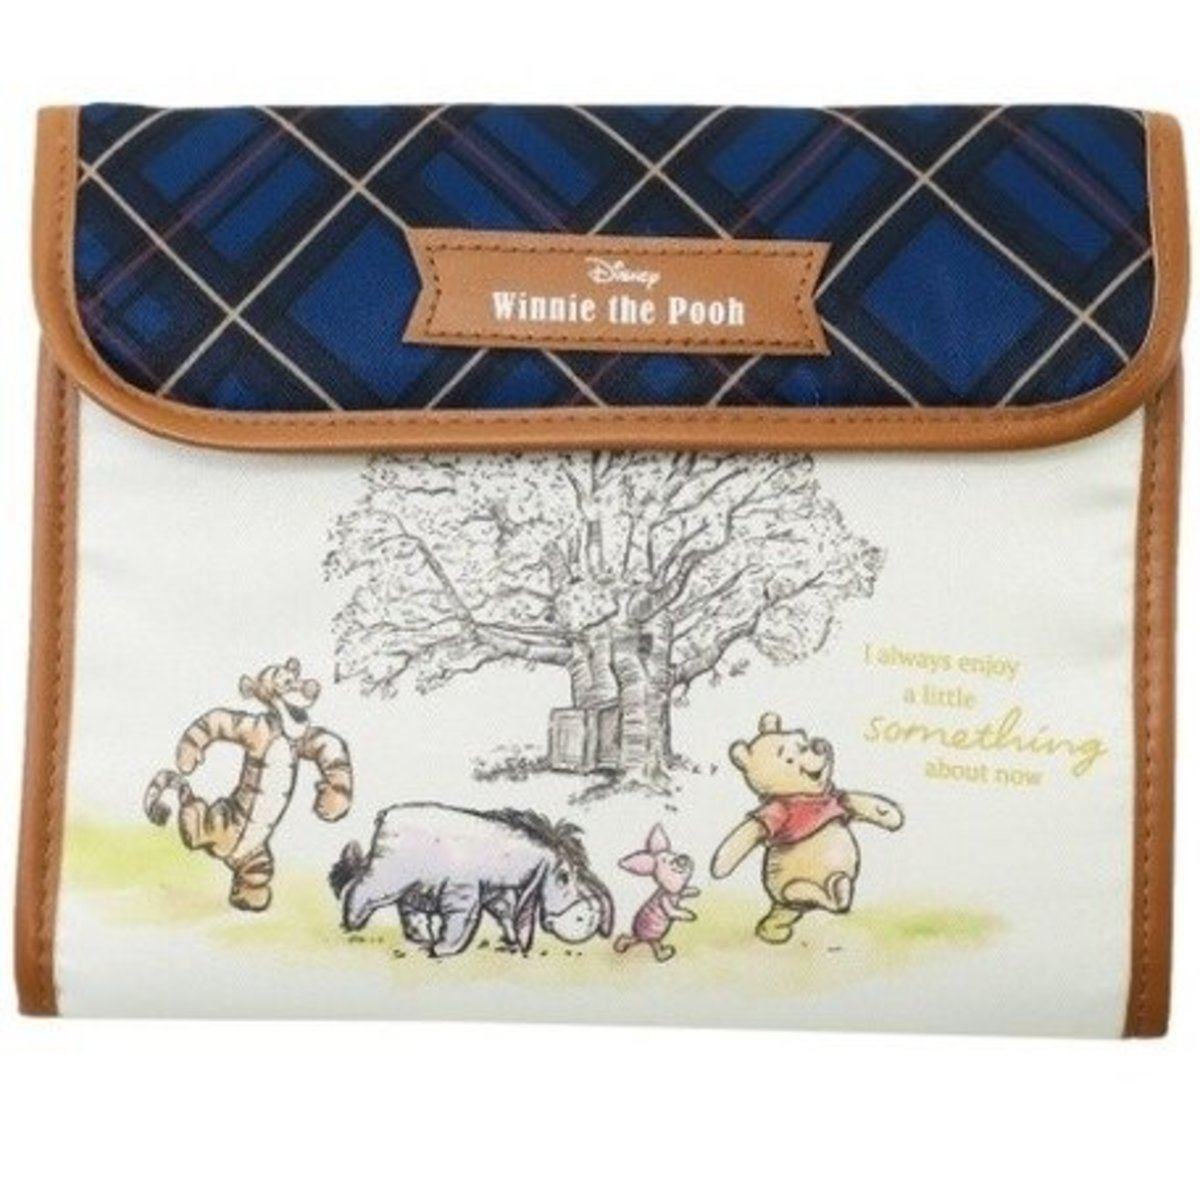 (Winnie the Pooh) Japan Disney Mother-Child Documents Storage Bag